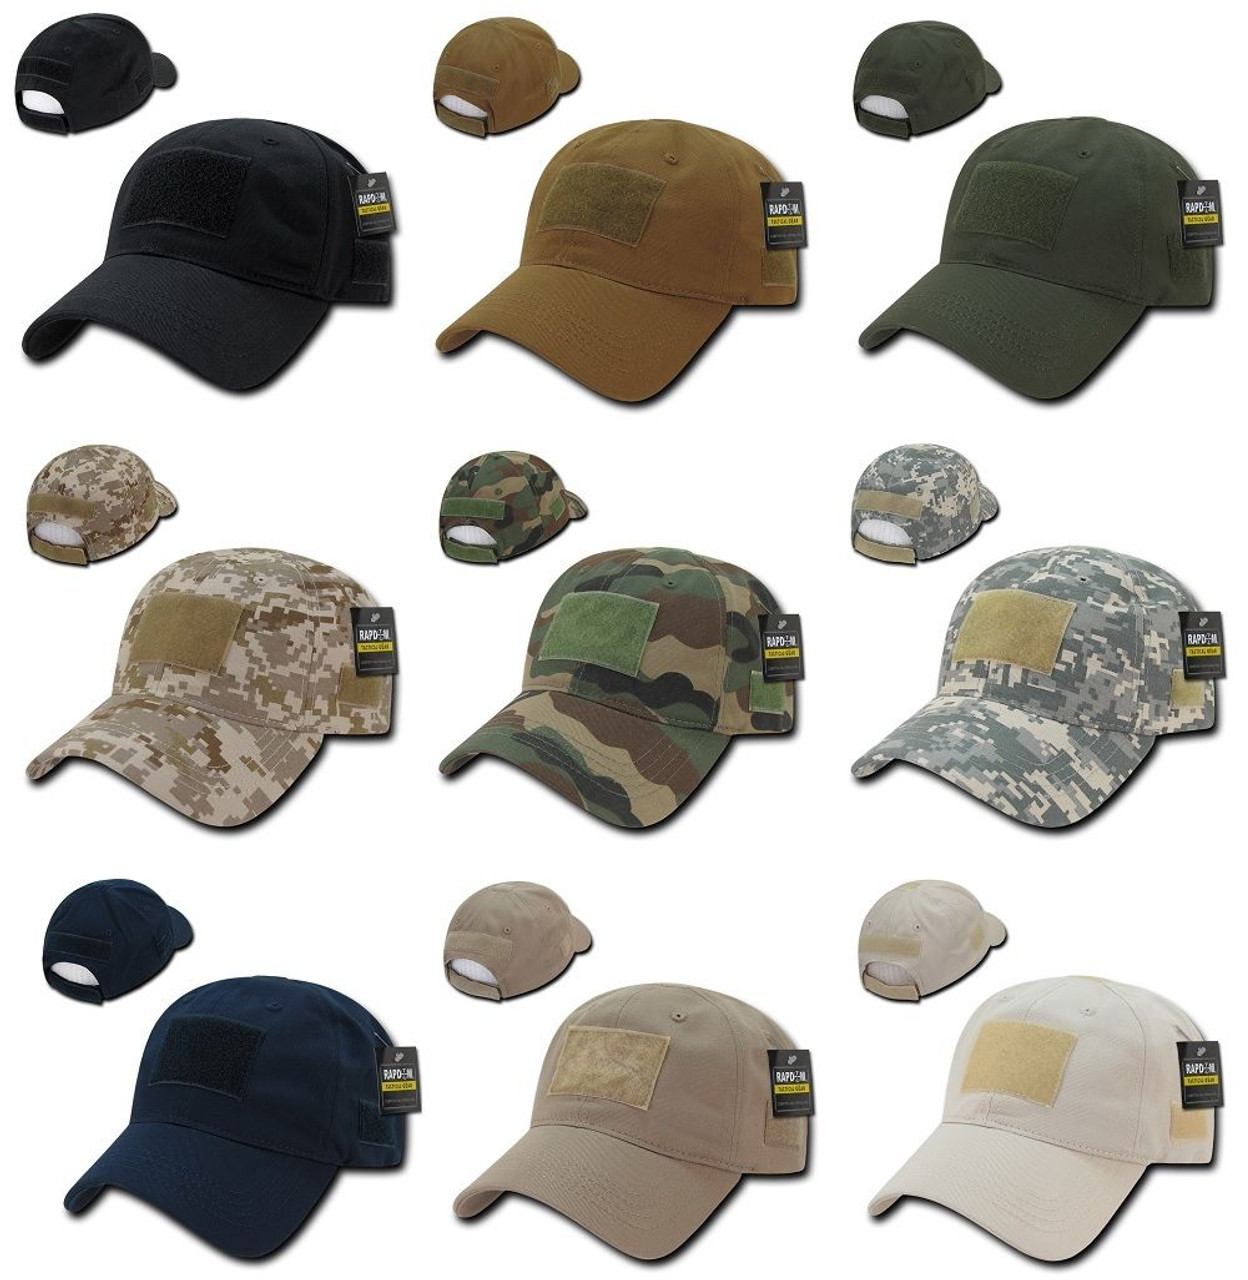 Tactical Operator Structured Contractor Military Patch Baseball Cap Hat 27ec3b682b7